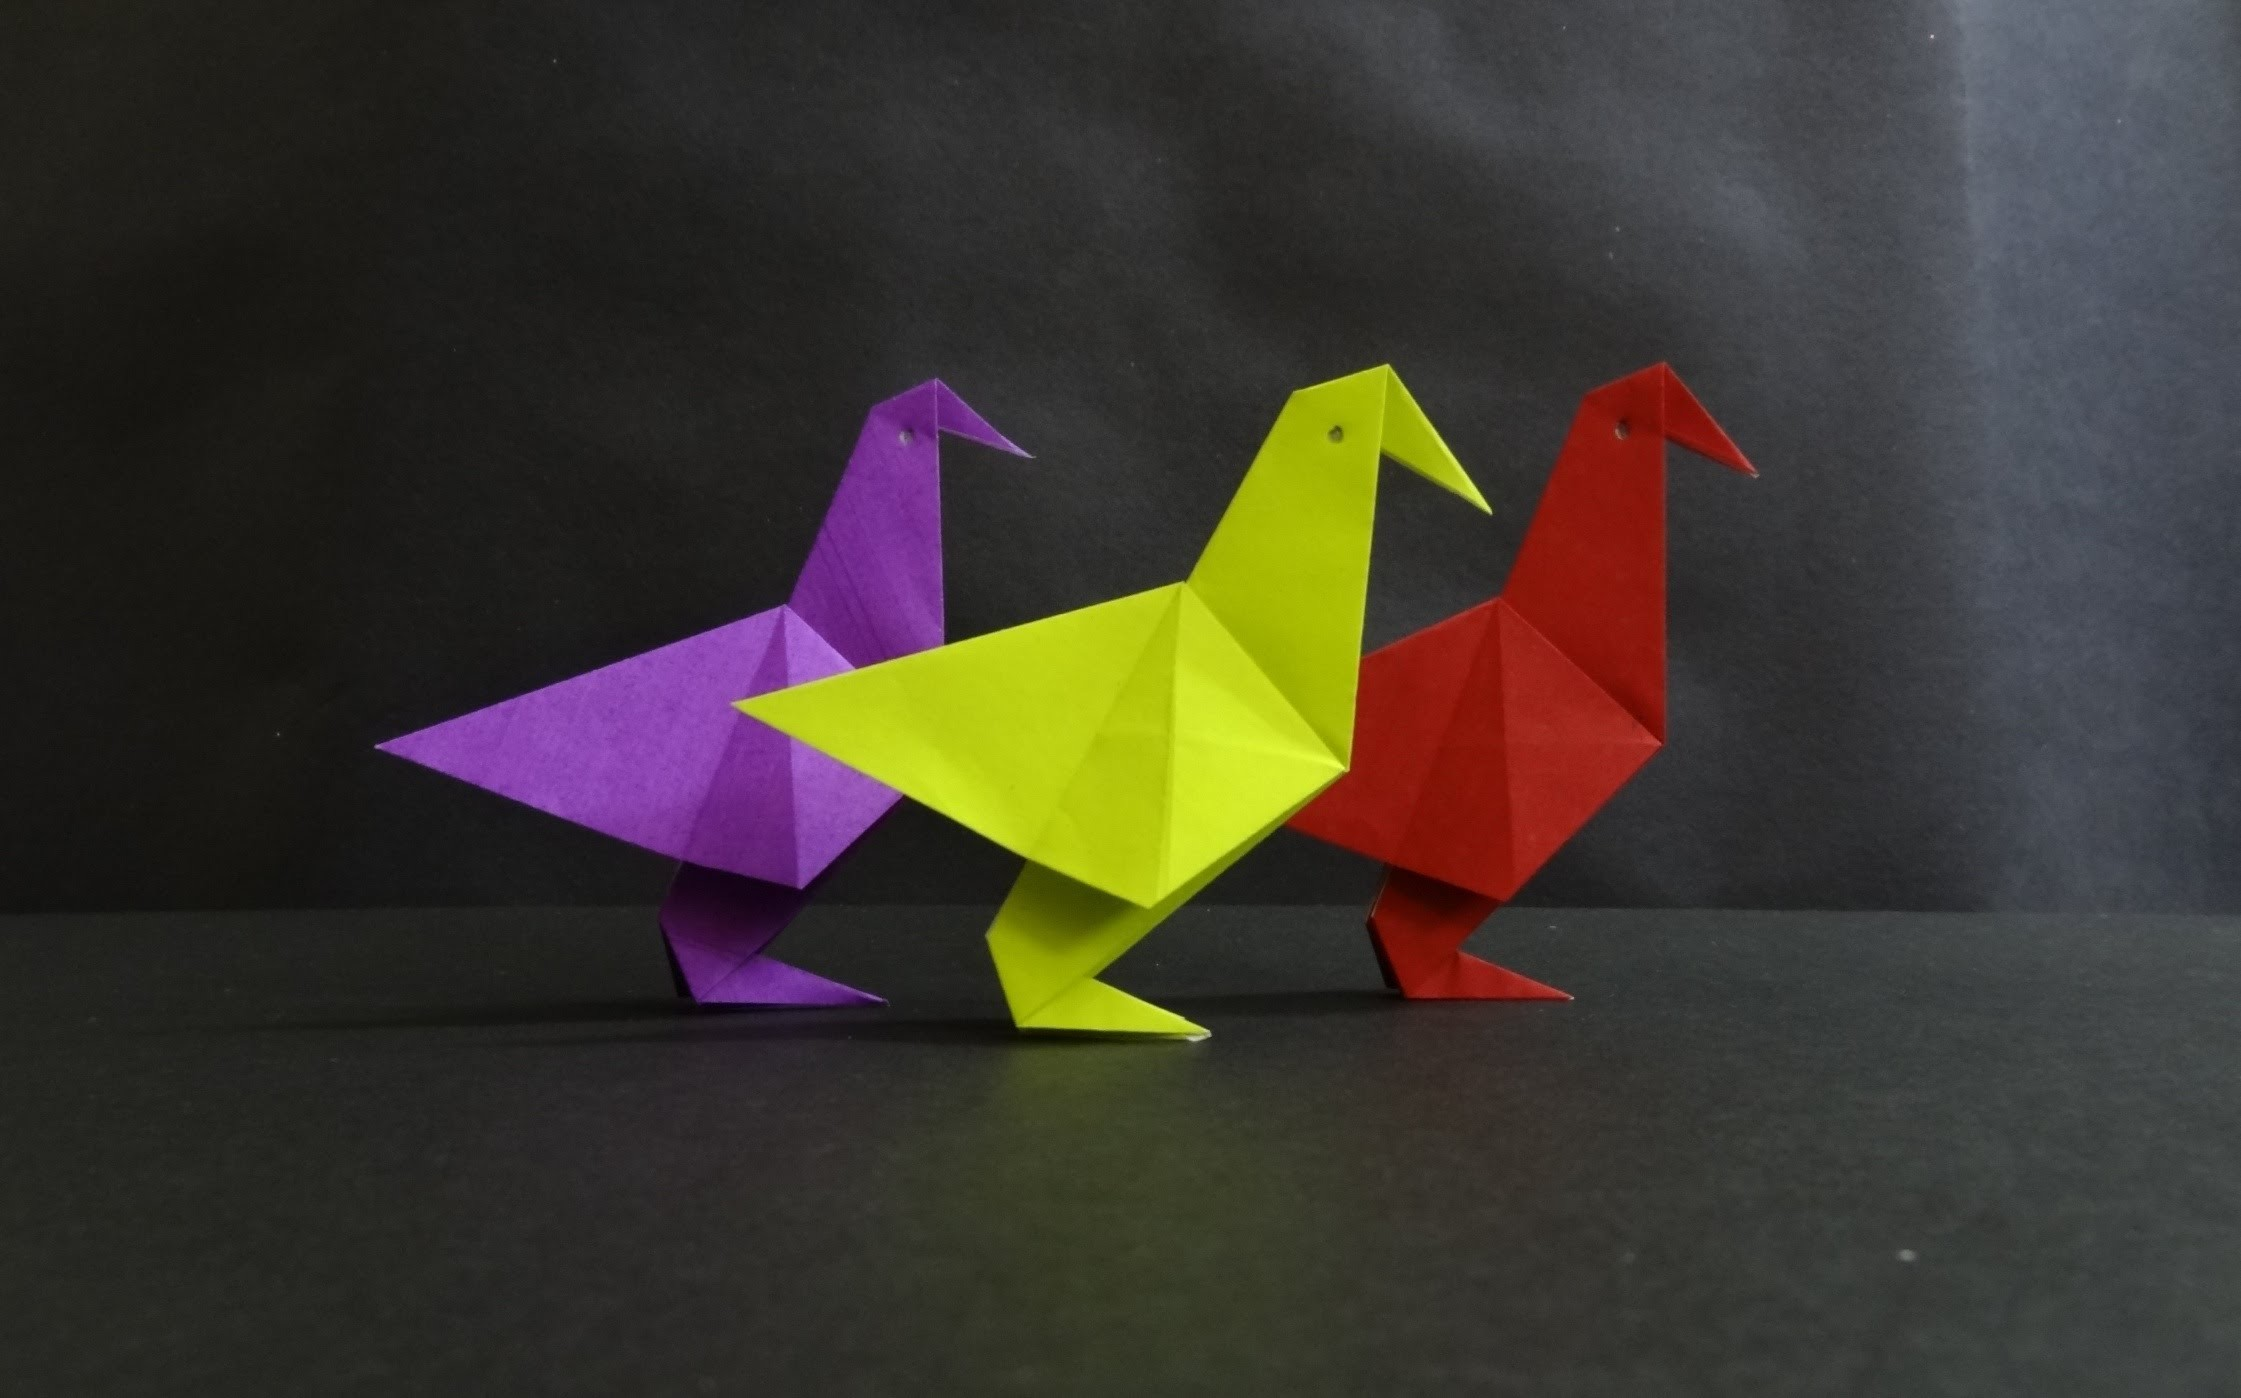 Origami Bird Tutorial - How to fold a Simple Paper Bird